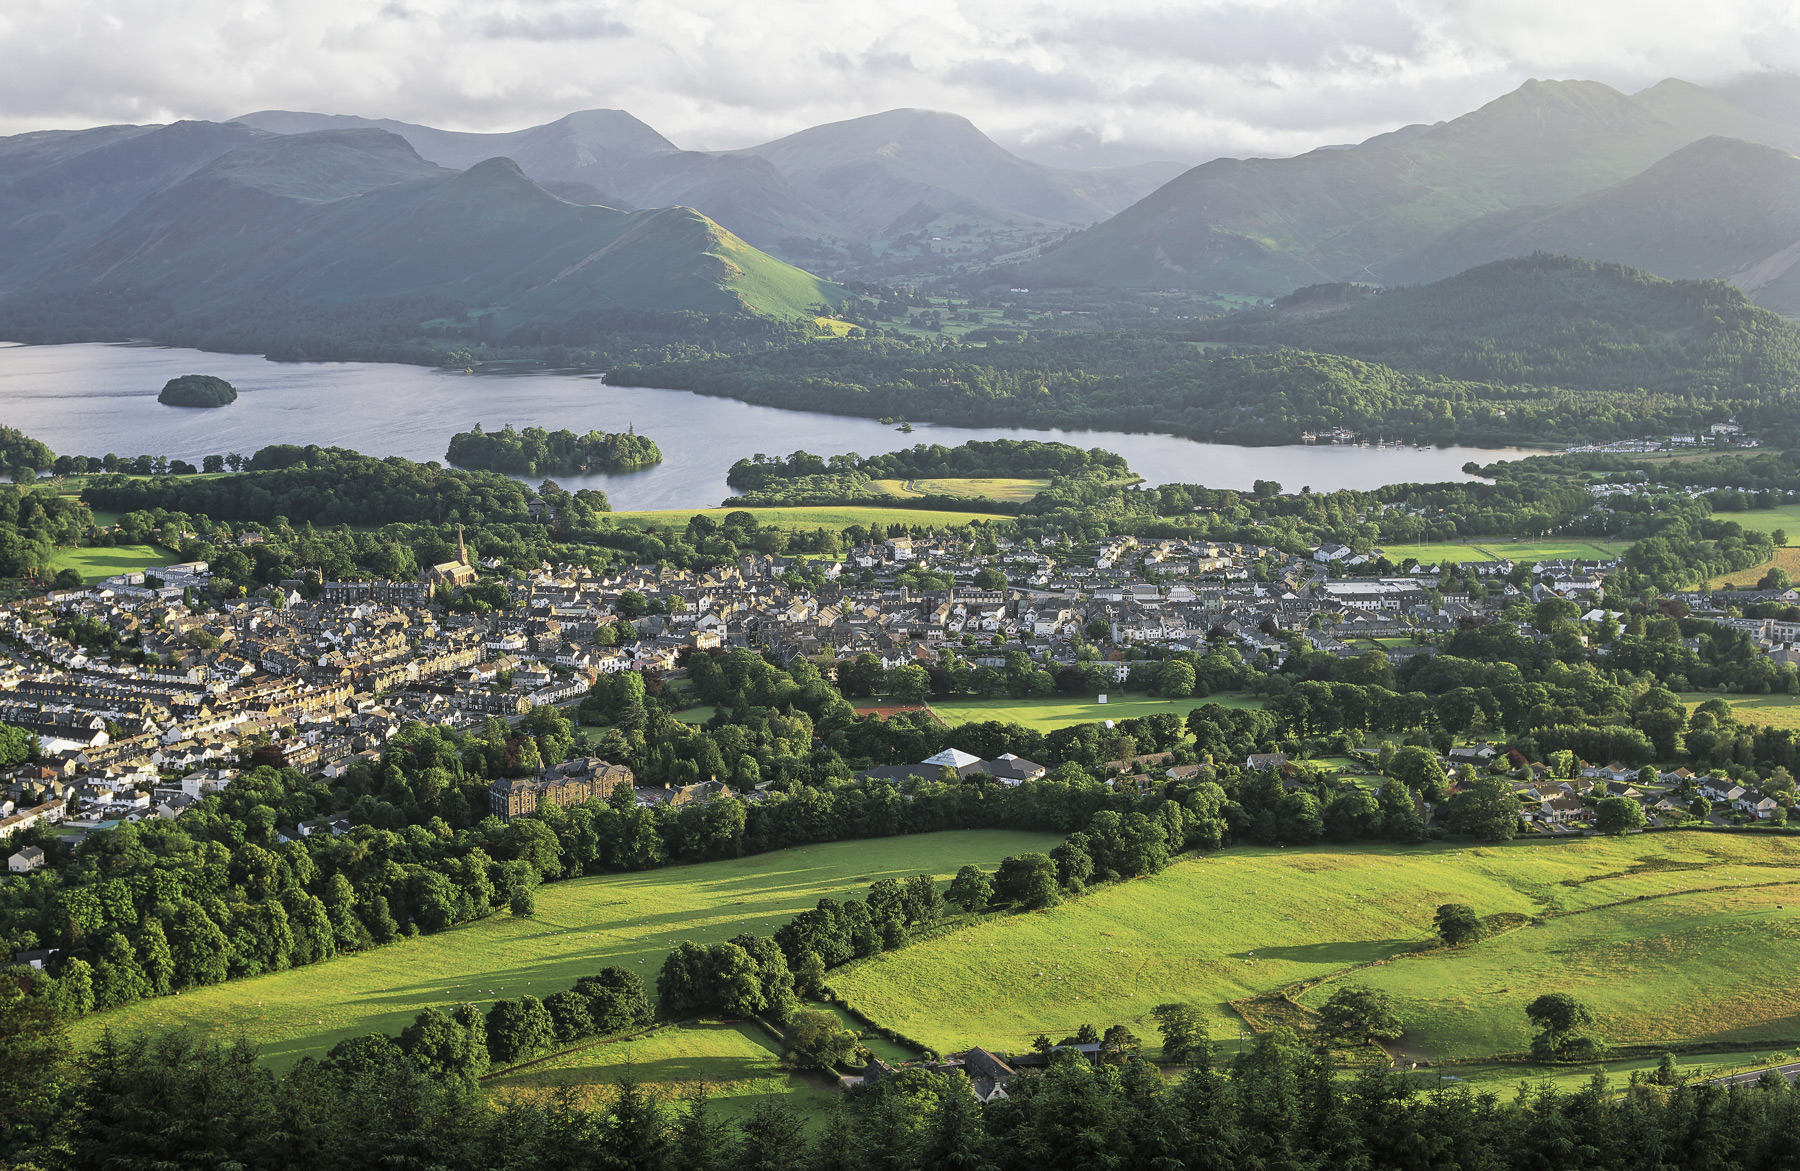 One of the best views of the Lake District town of Keswick and its nearby lake, Derwent backed by the green and verdant slopes...